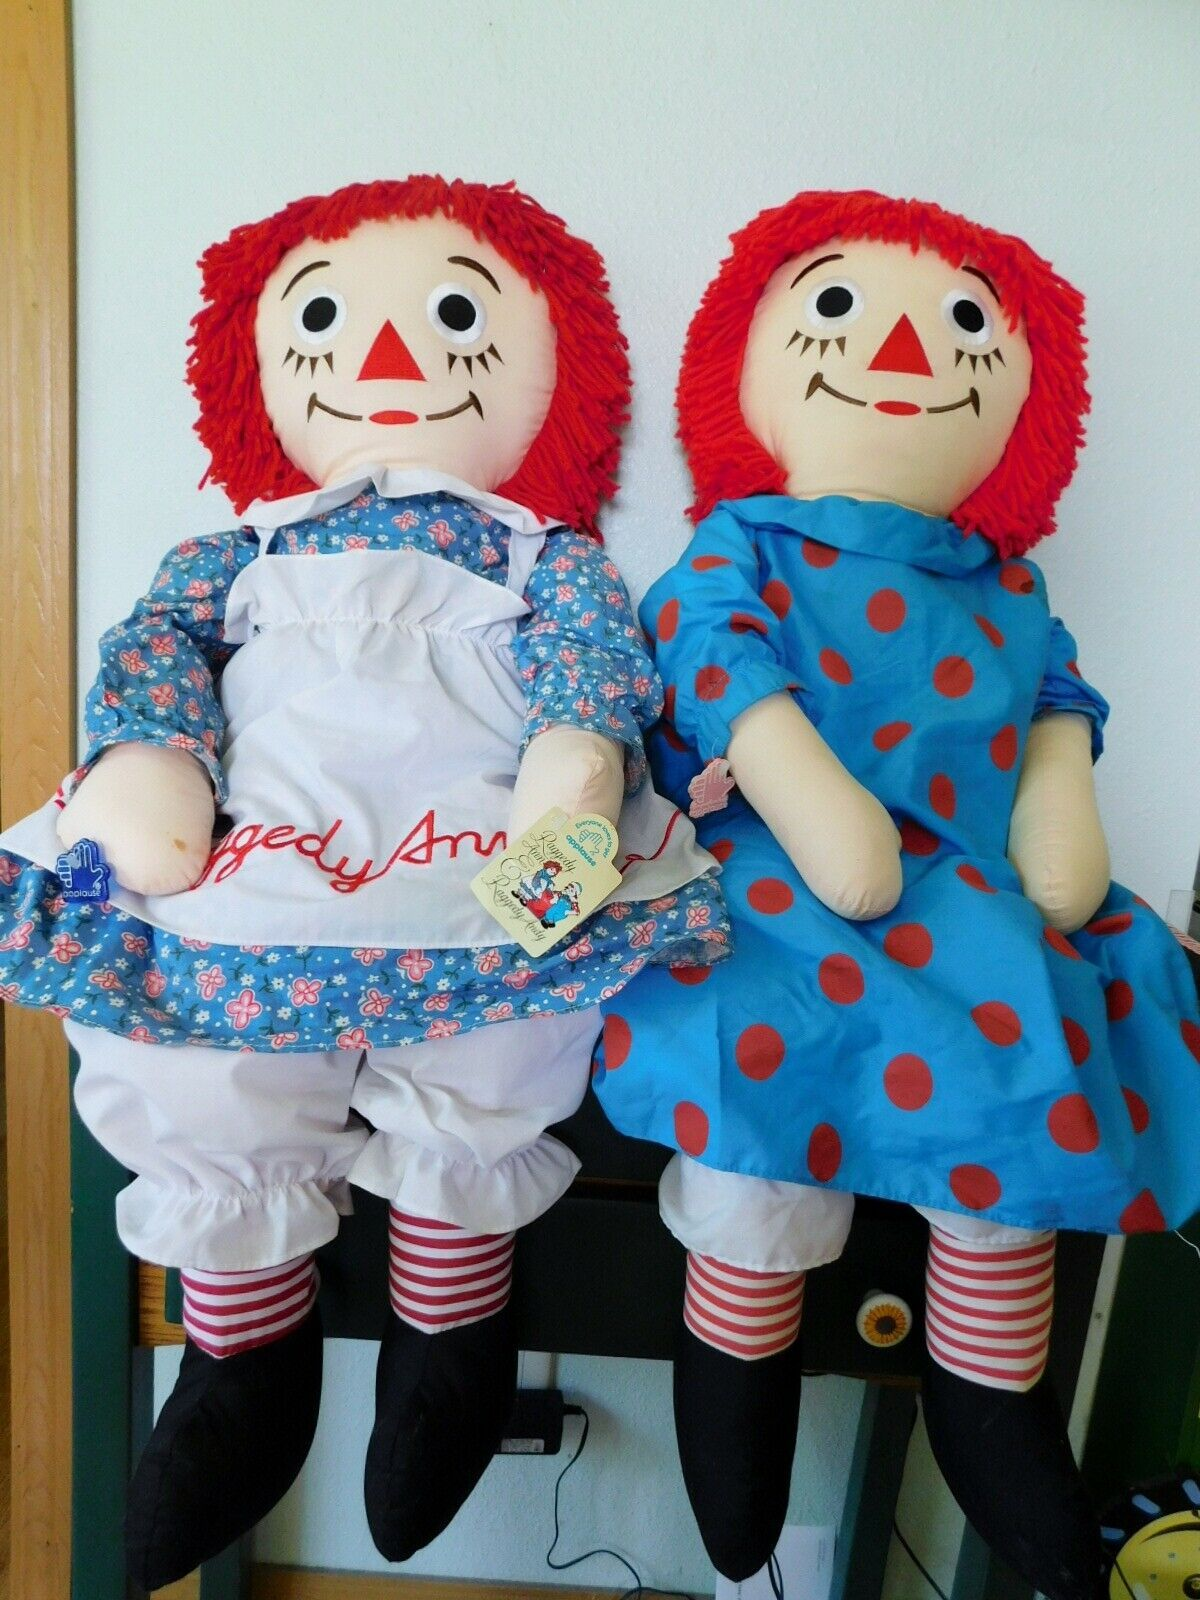 "(2) 36"" RAGGEDY ANN DOLLS with Hangtags Applause"